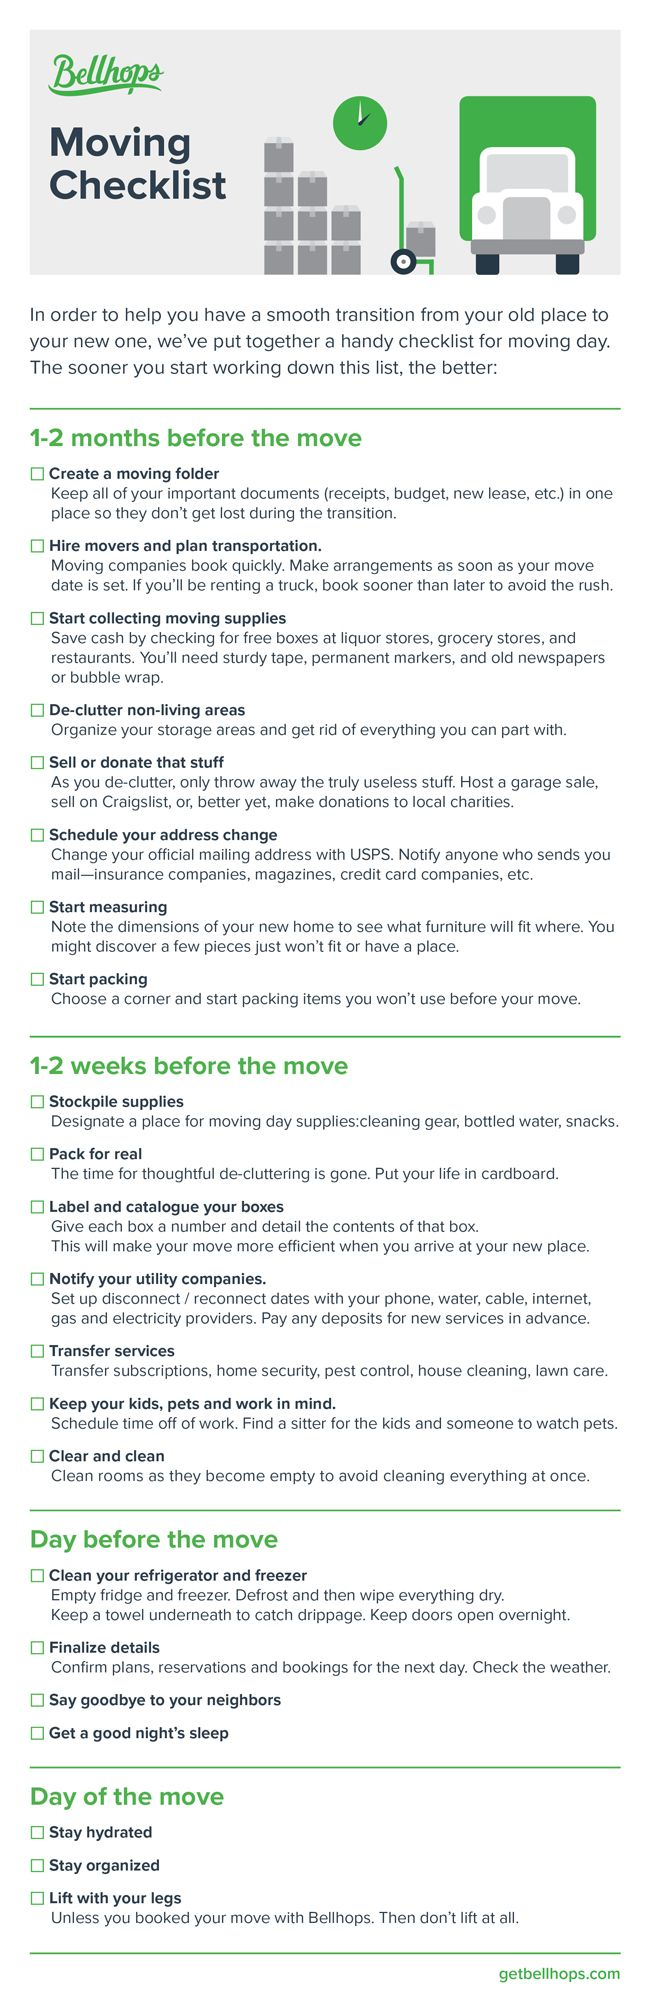 The best Moving Checklist that's printable, downloadable, and checkoff-able. We at Bellhops know how stressful moving can be it helps to use a checklist to stay organized. Print this off and stick it on your fridge to help make your moving day a little easier. Click to download today!